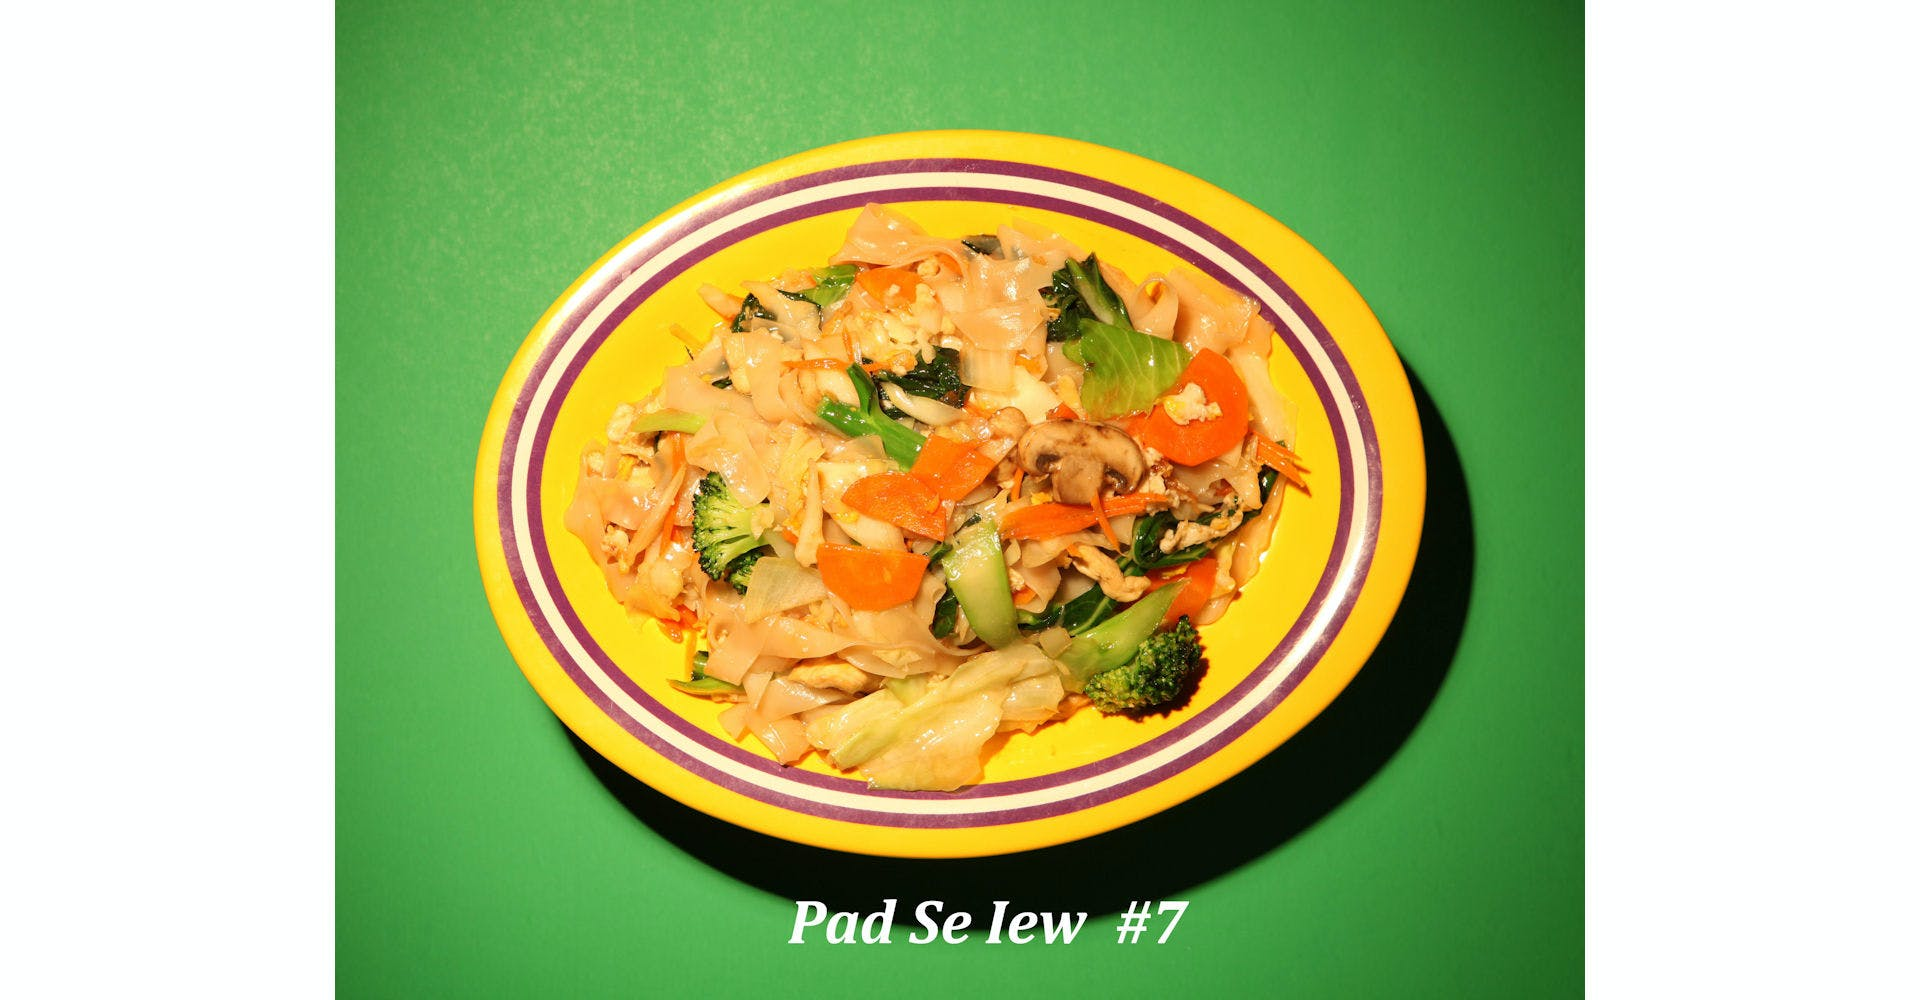 7. Pad See Eiw from Narin's Thai Kitchen in Green Bay, WI